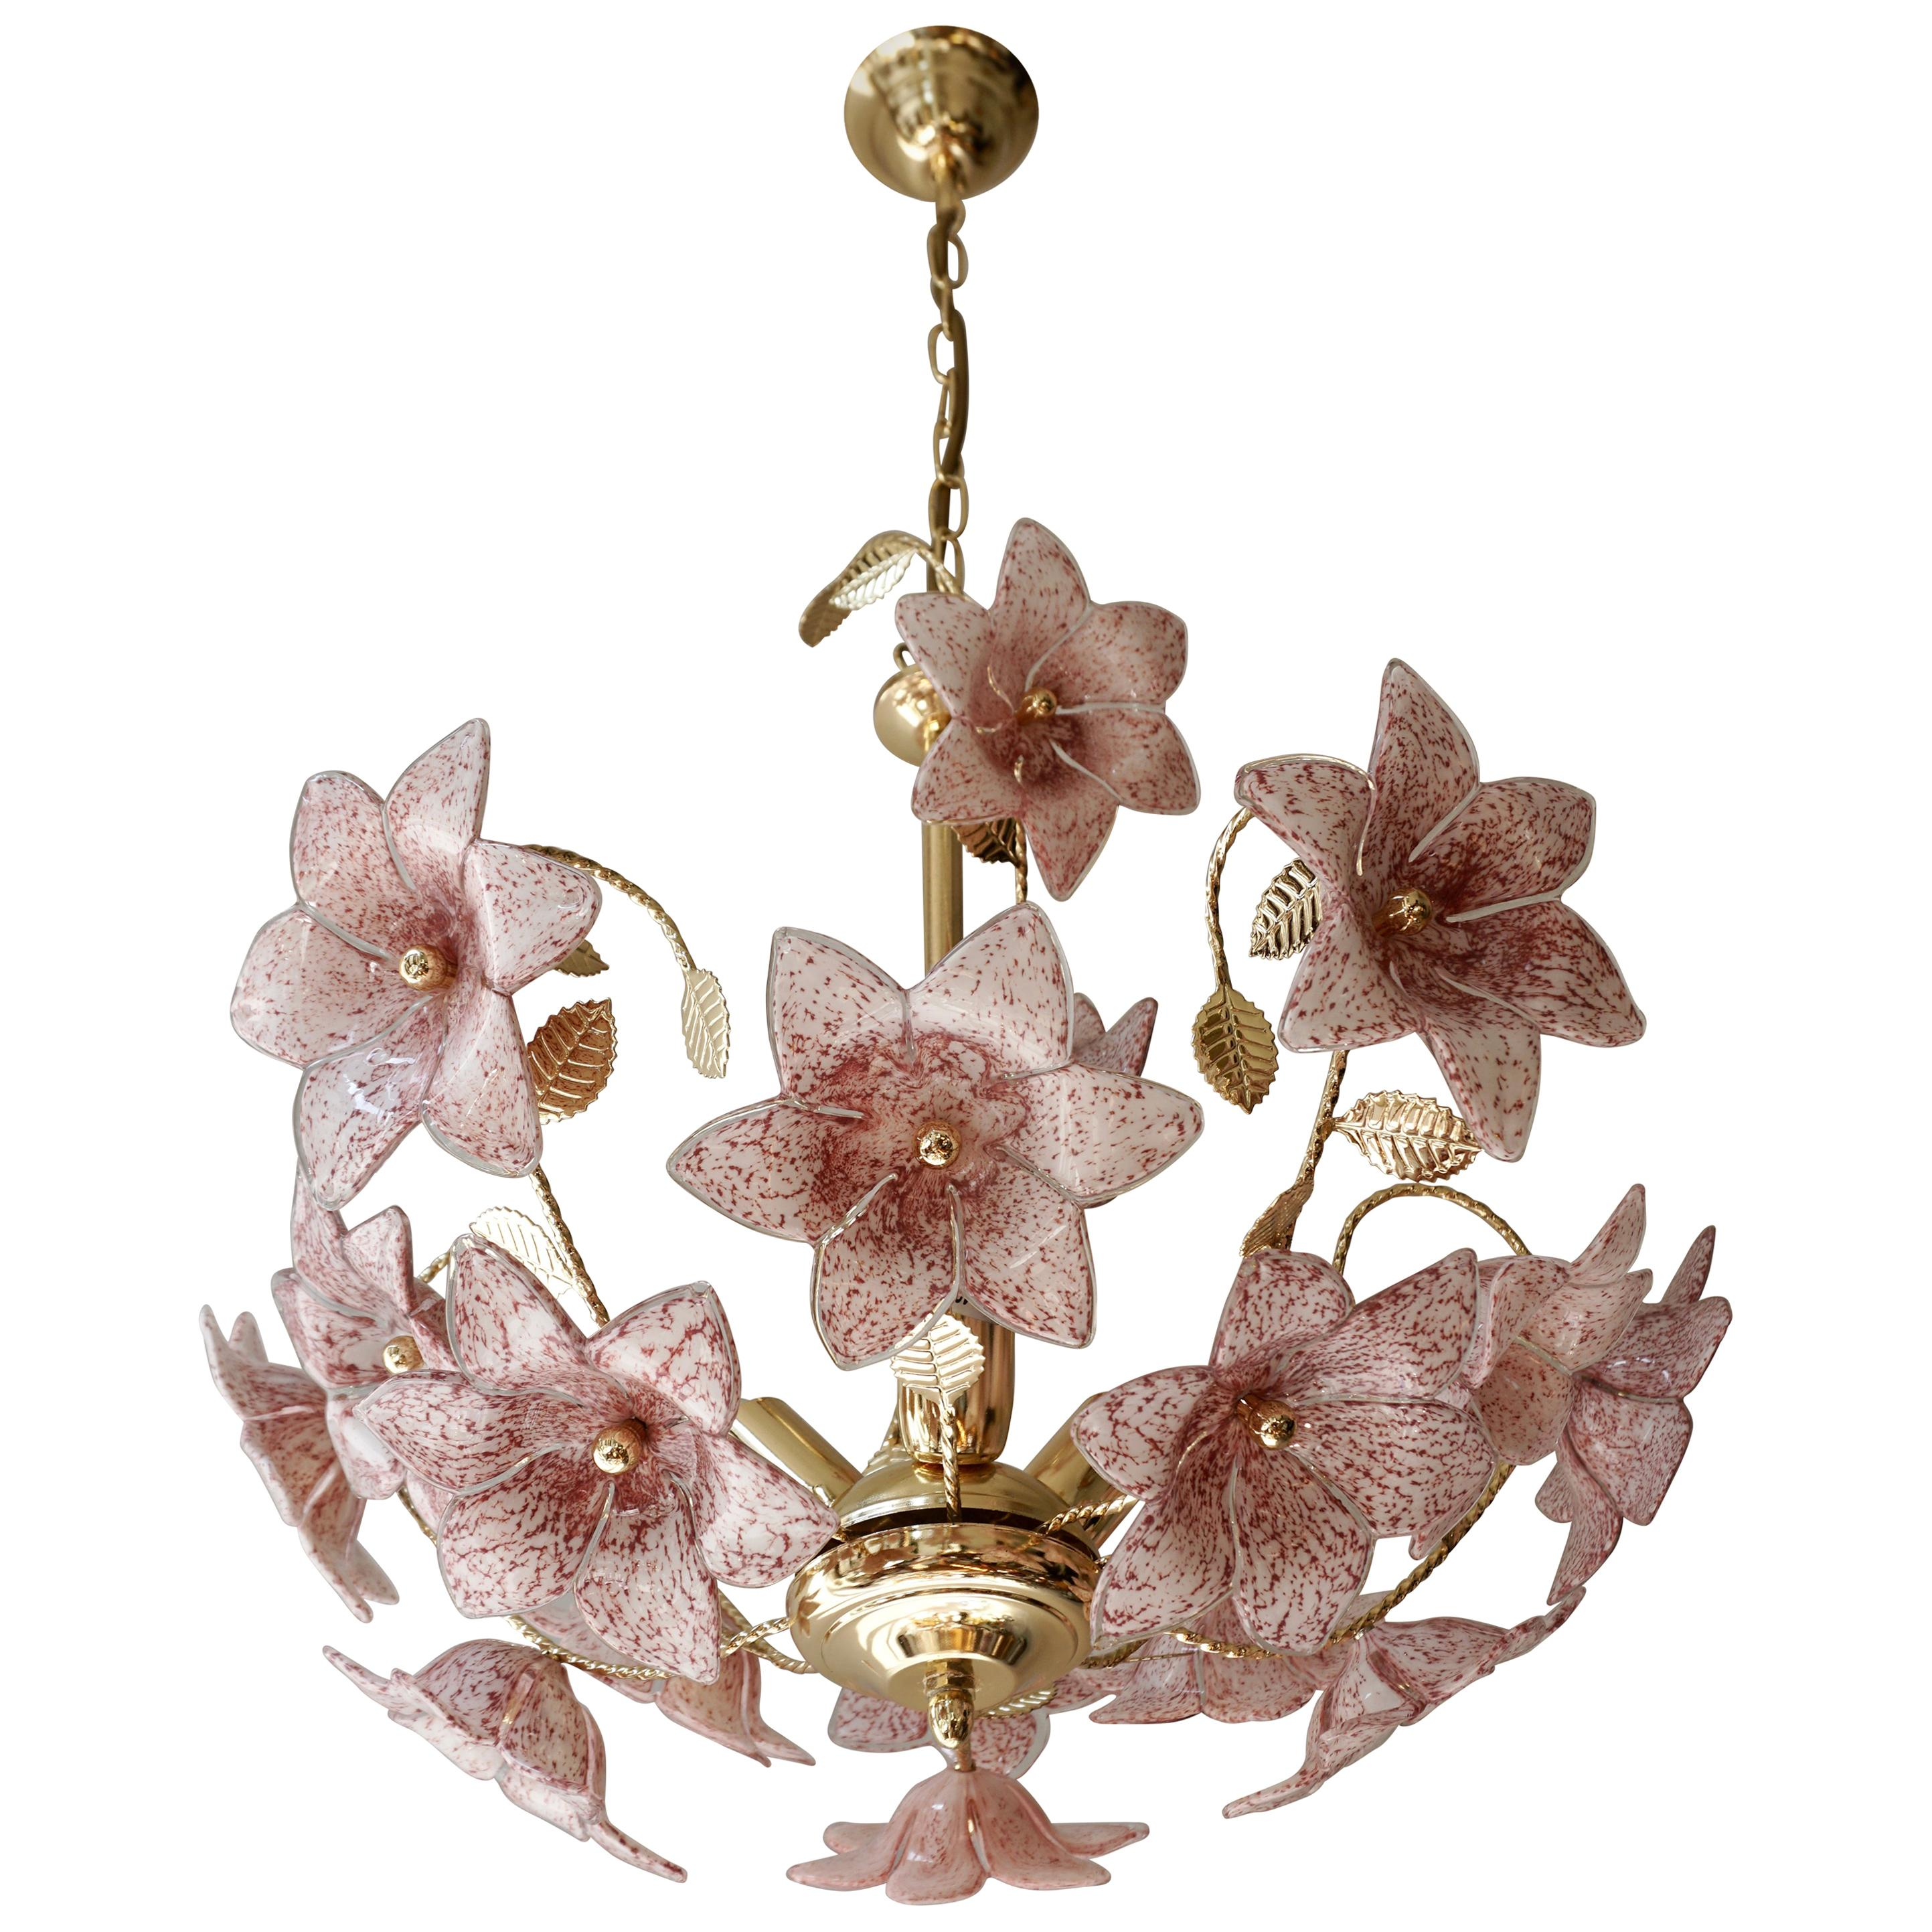 Chandelier in Brass with Pink Murano Glass Flowers